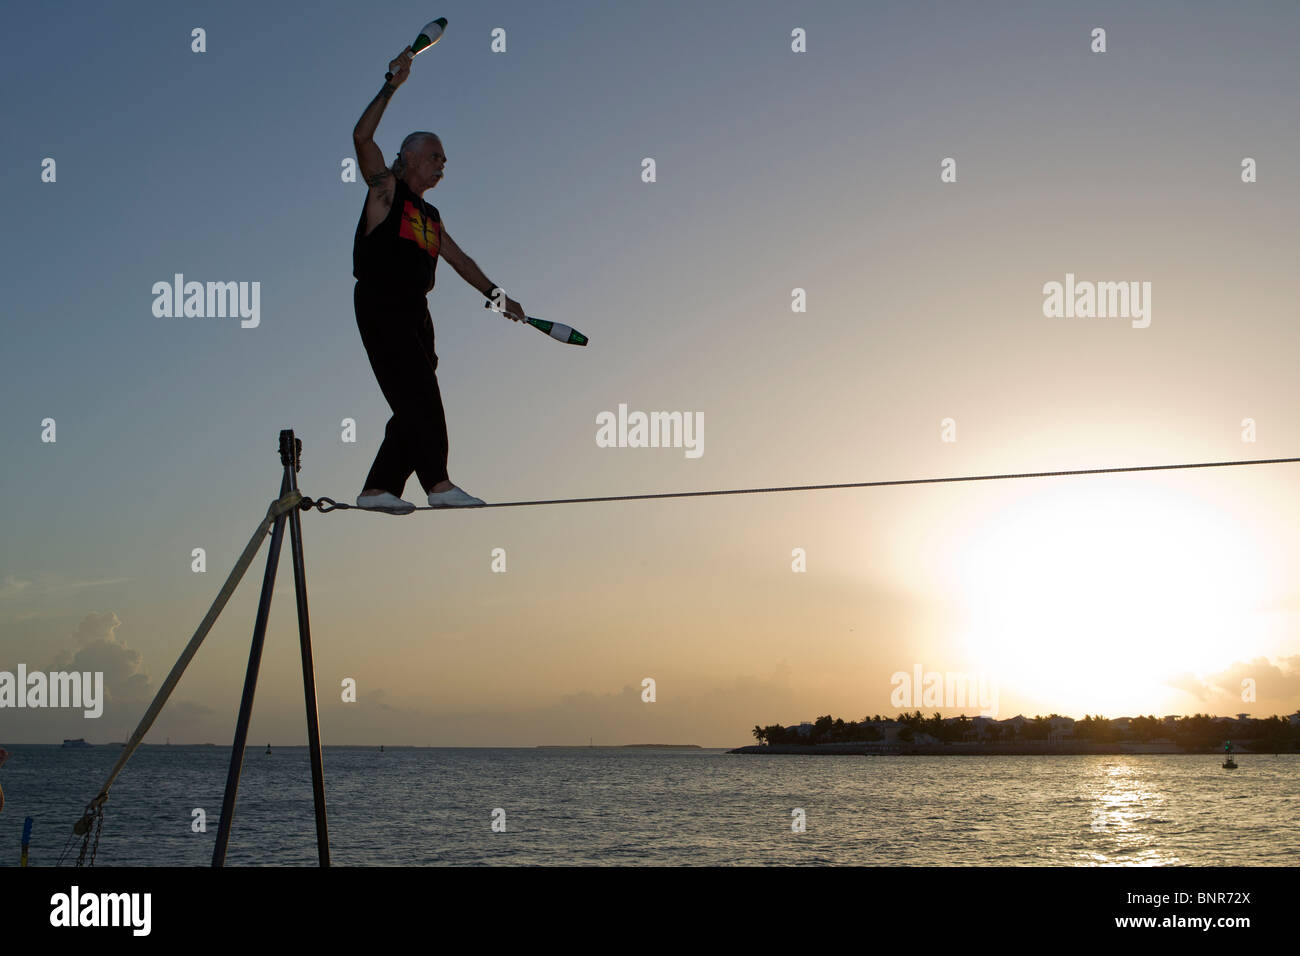 Famed sunset celebration, Key West, Florida.  Street performer, Will Soto on the high wire. Stock Photo